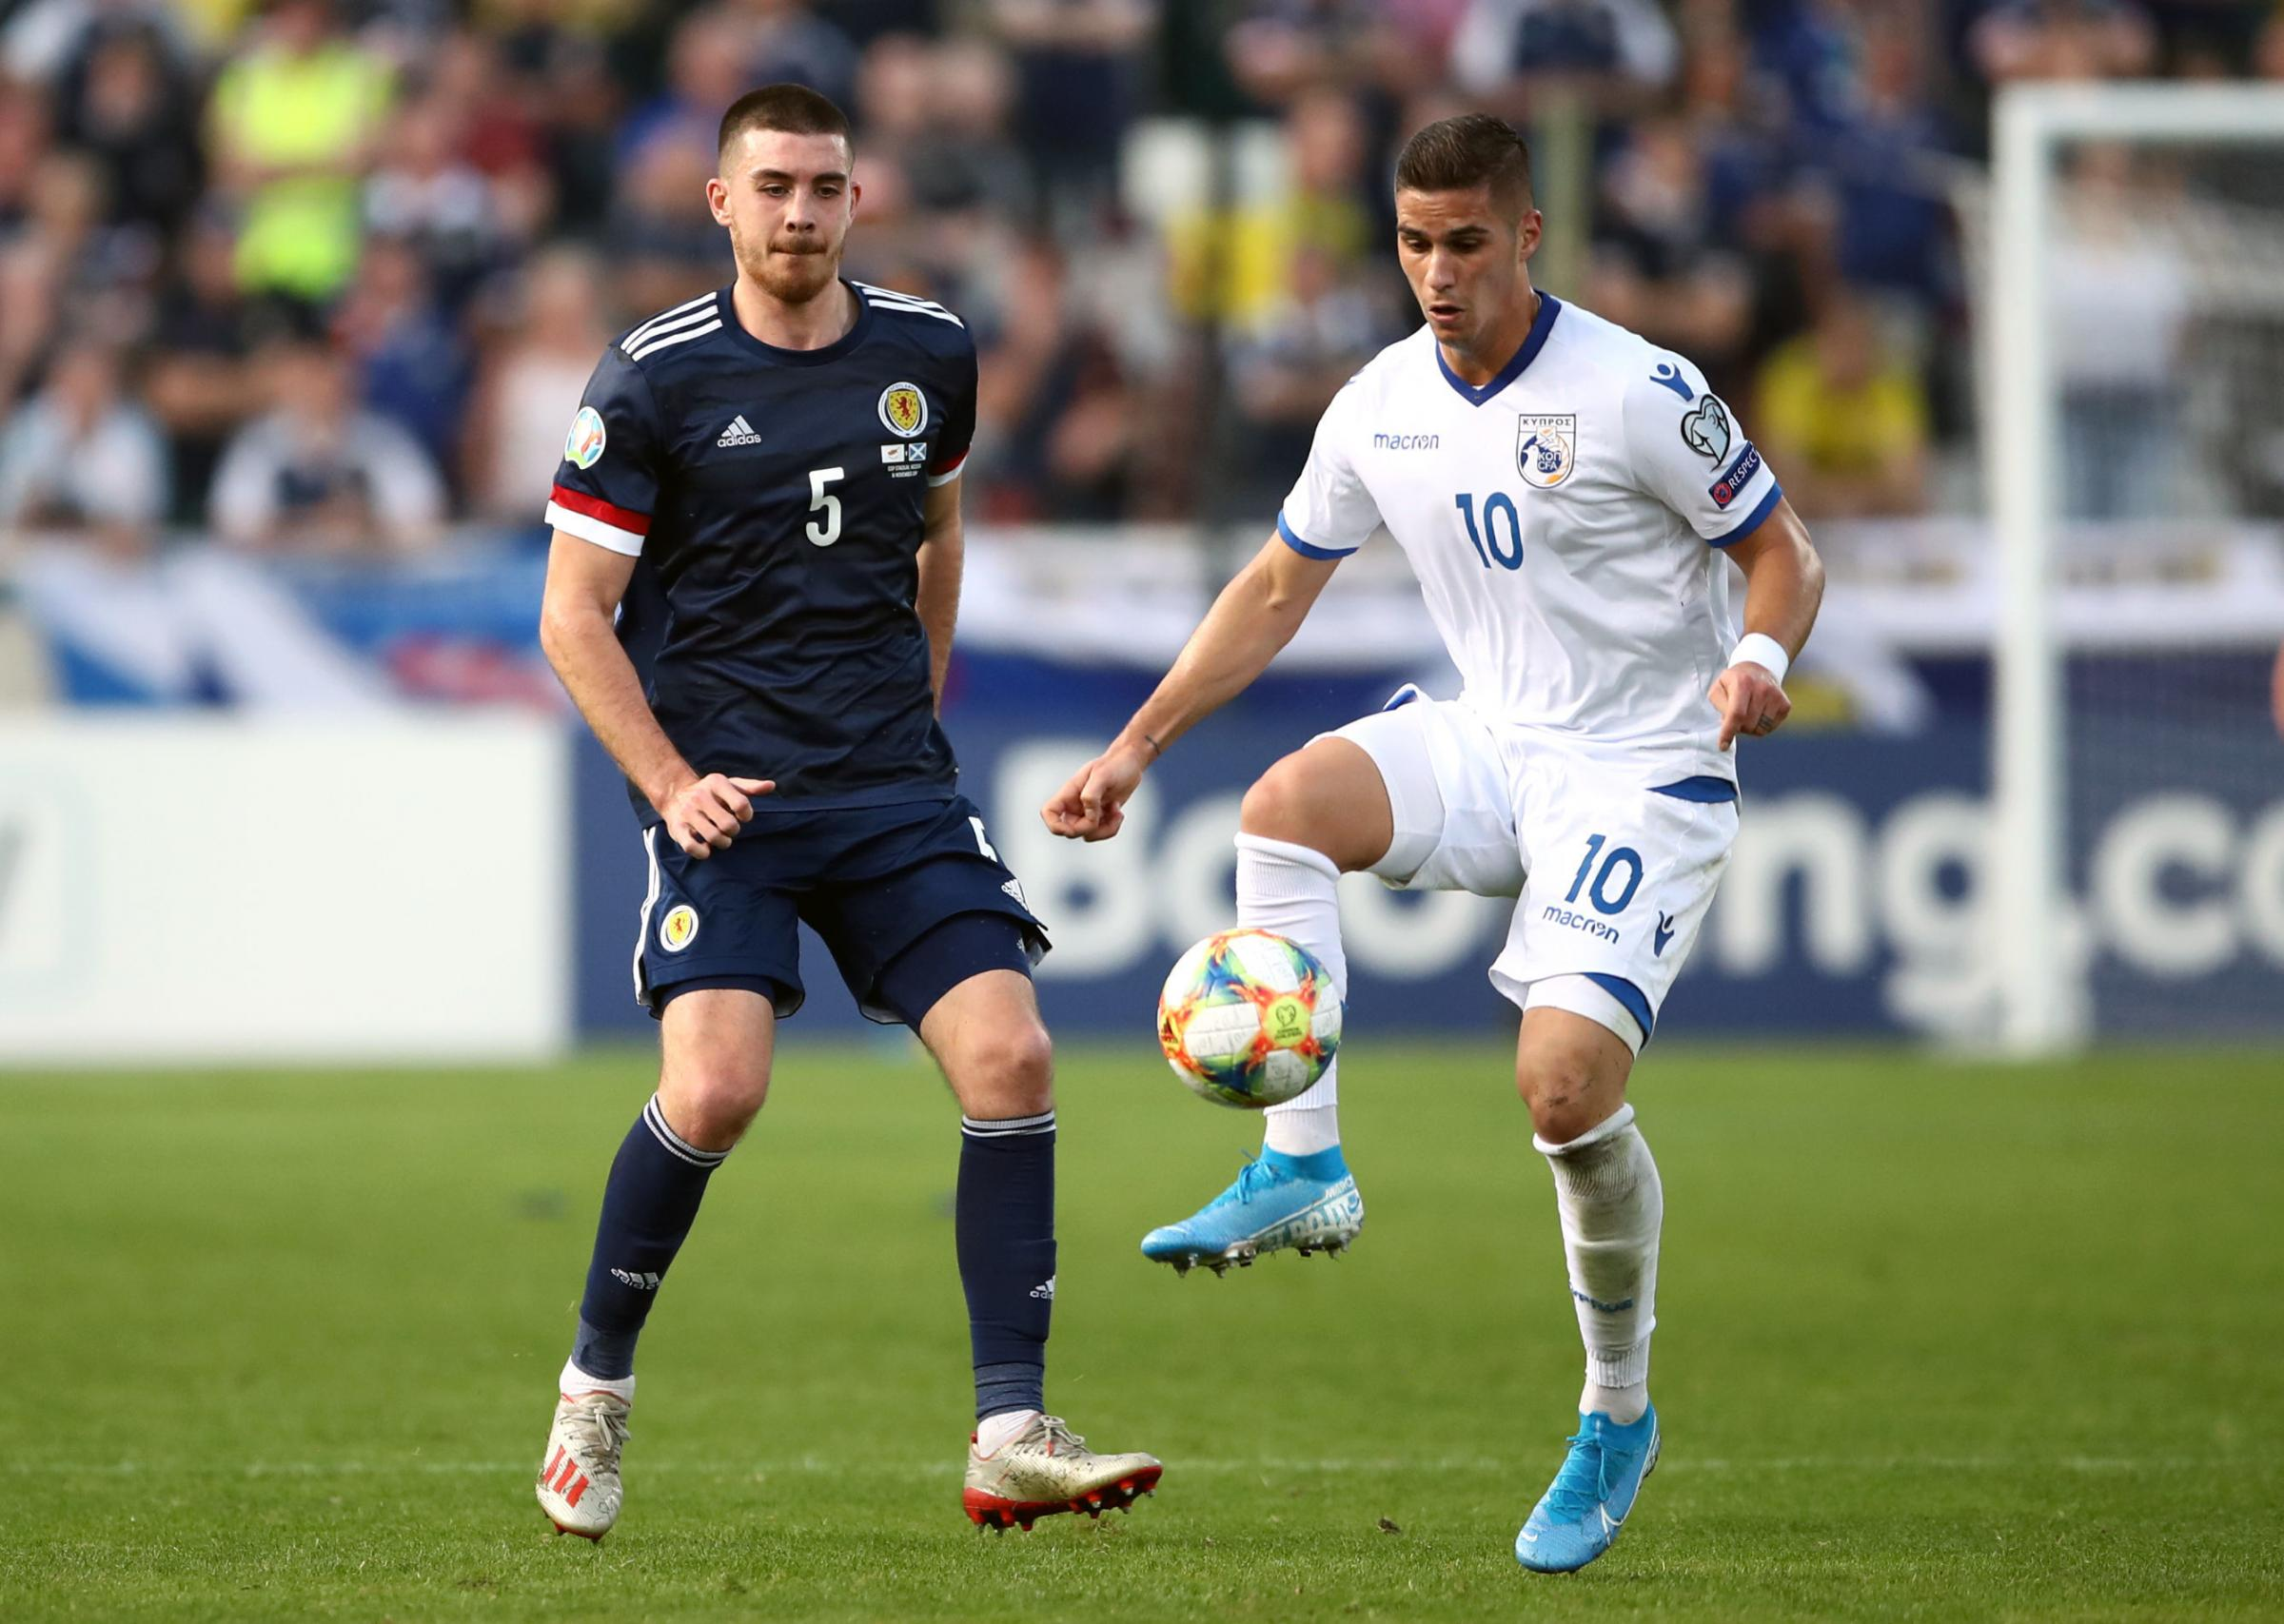 Declan Gallagher: I felt like crying as I made my Scotland debut in Cyprus with my family watching - The National